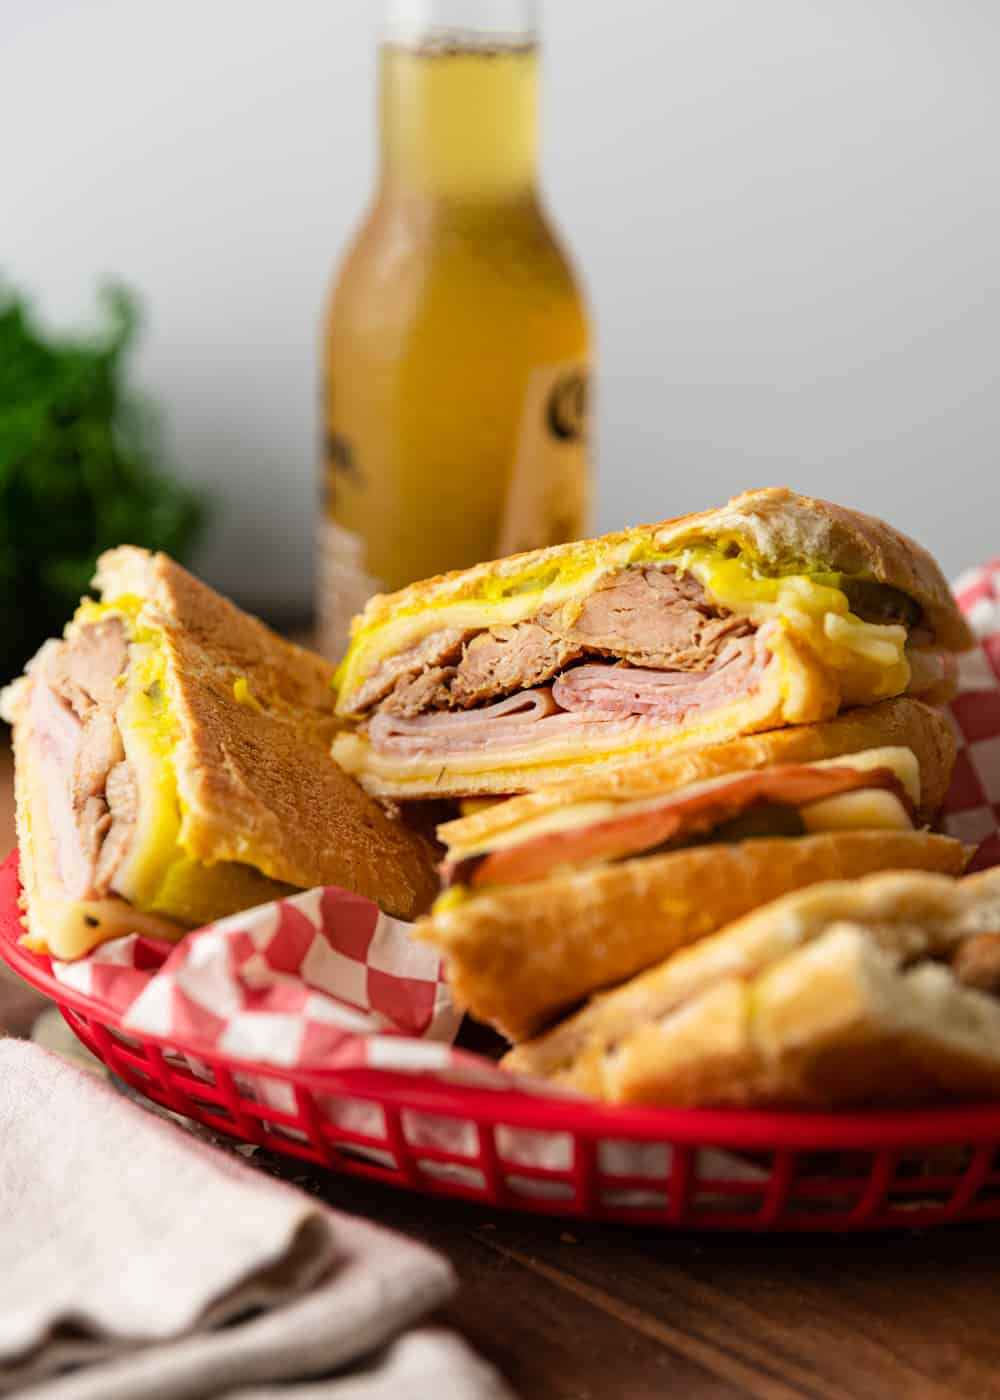 Sliced Cuban sandwiches in a basket with beer in the background.